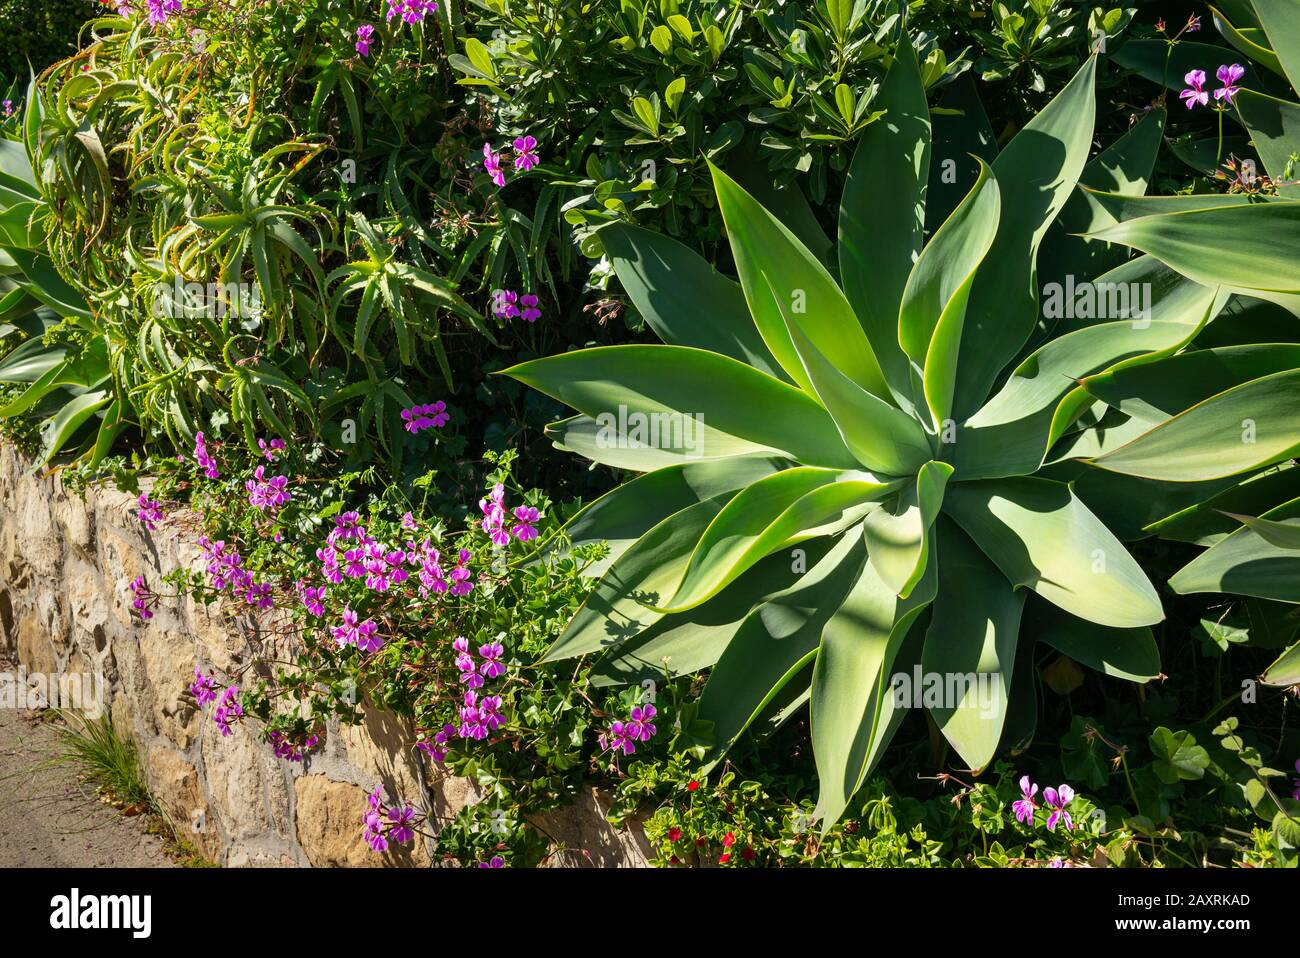 California Garden With Agave Succulent And Flowering Native